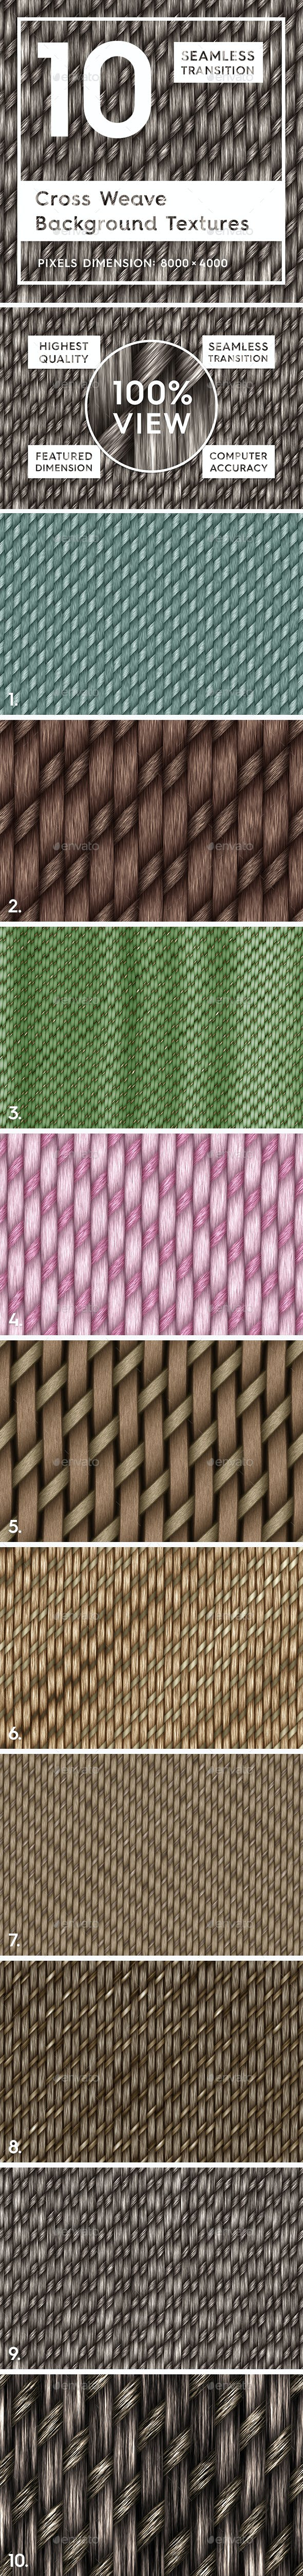 10 Cross Weave Background Textures - 3DOcean Item for Sale